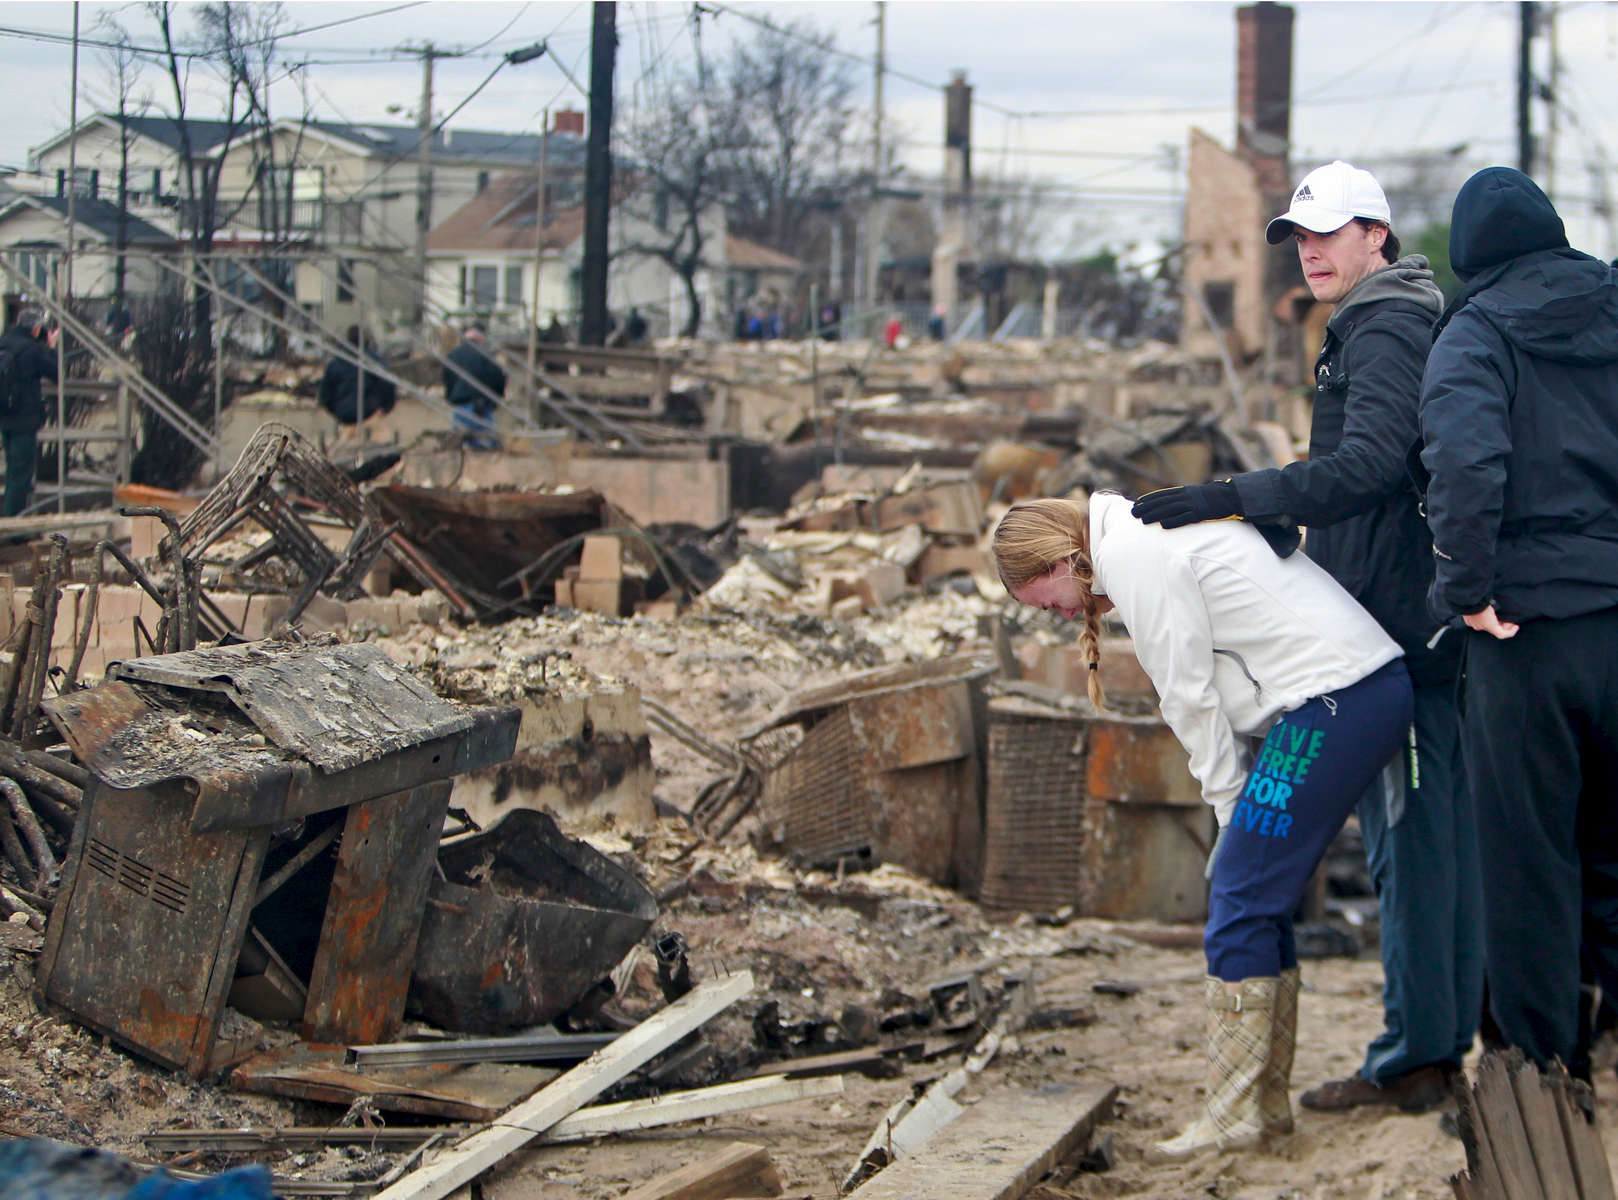 A woman weeps as she came back to see her destroyed home in Breezy Point, New York from a massive fire caused by hurricane Sandy on Wednesday, October 31, 2012.